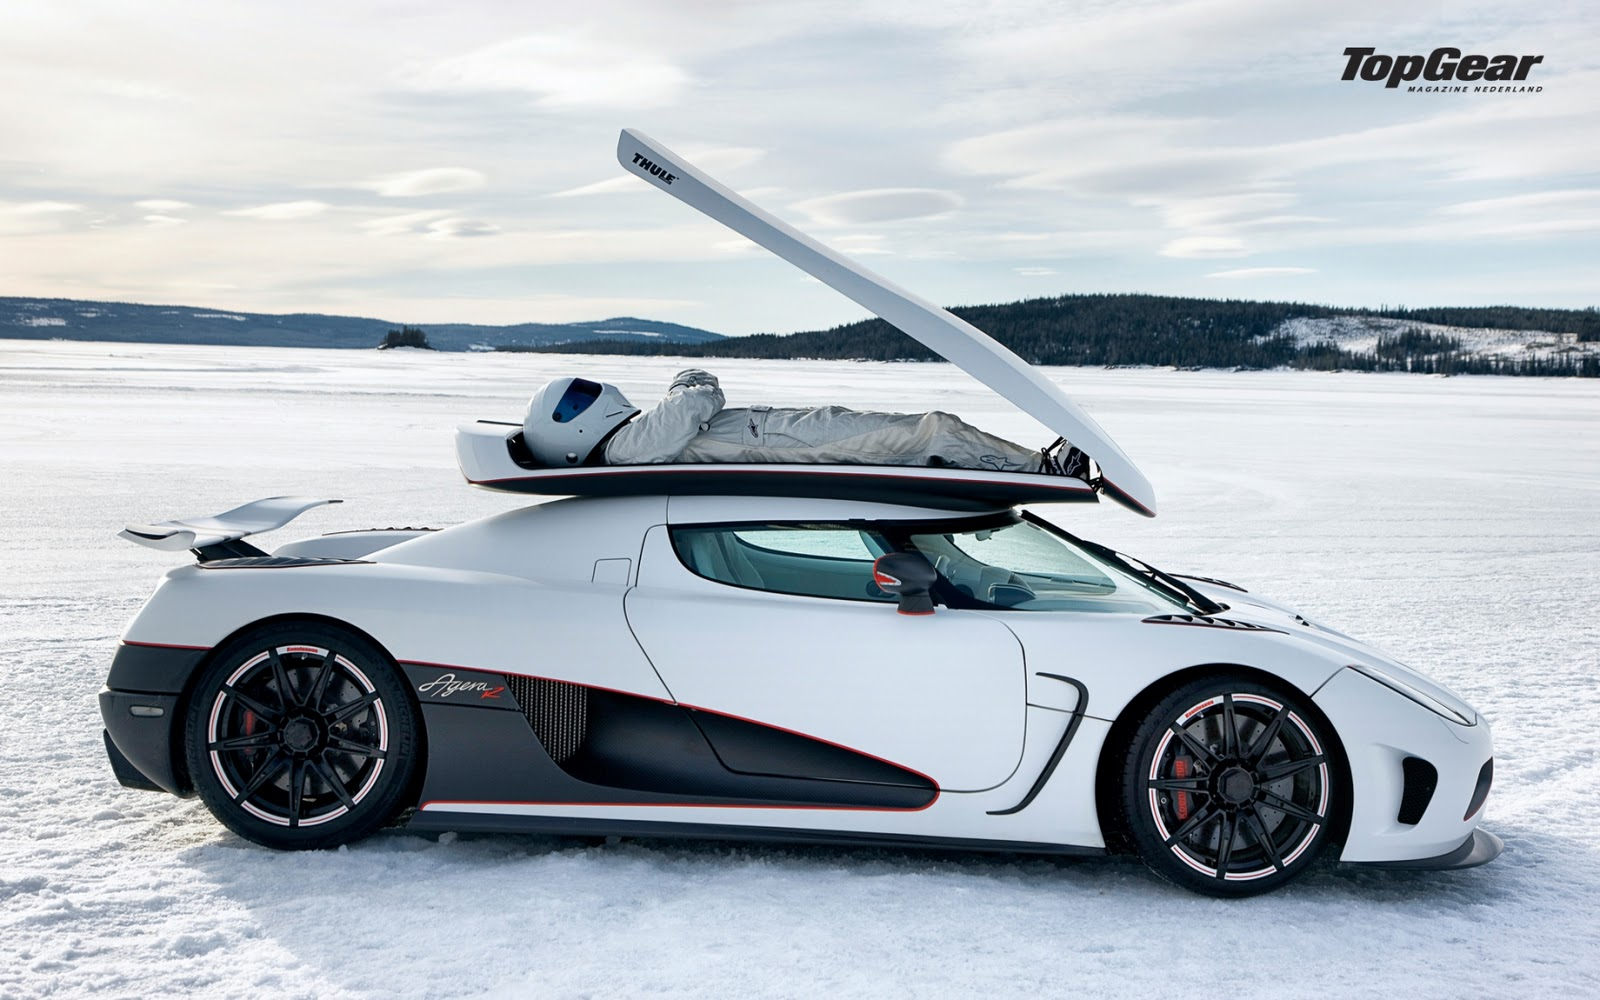 Ski Rack For Car >> Koenigsegg Agera R | Takeyoshi images